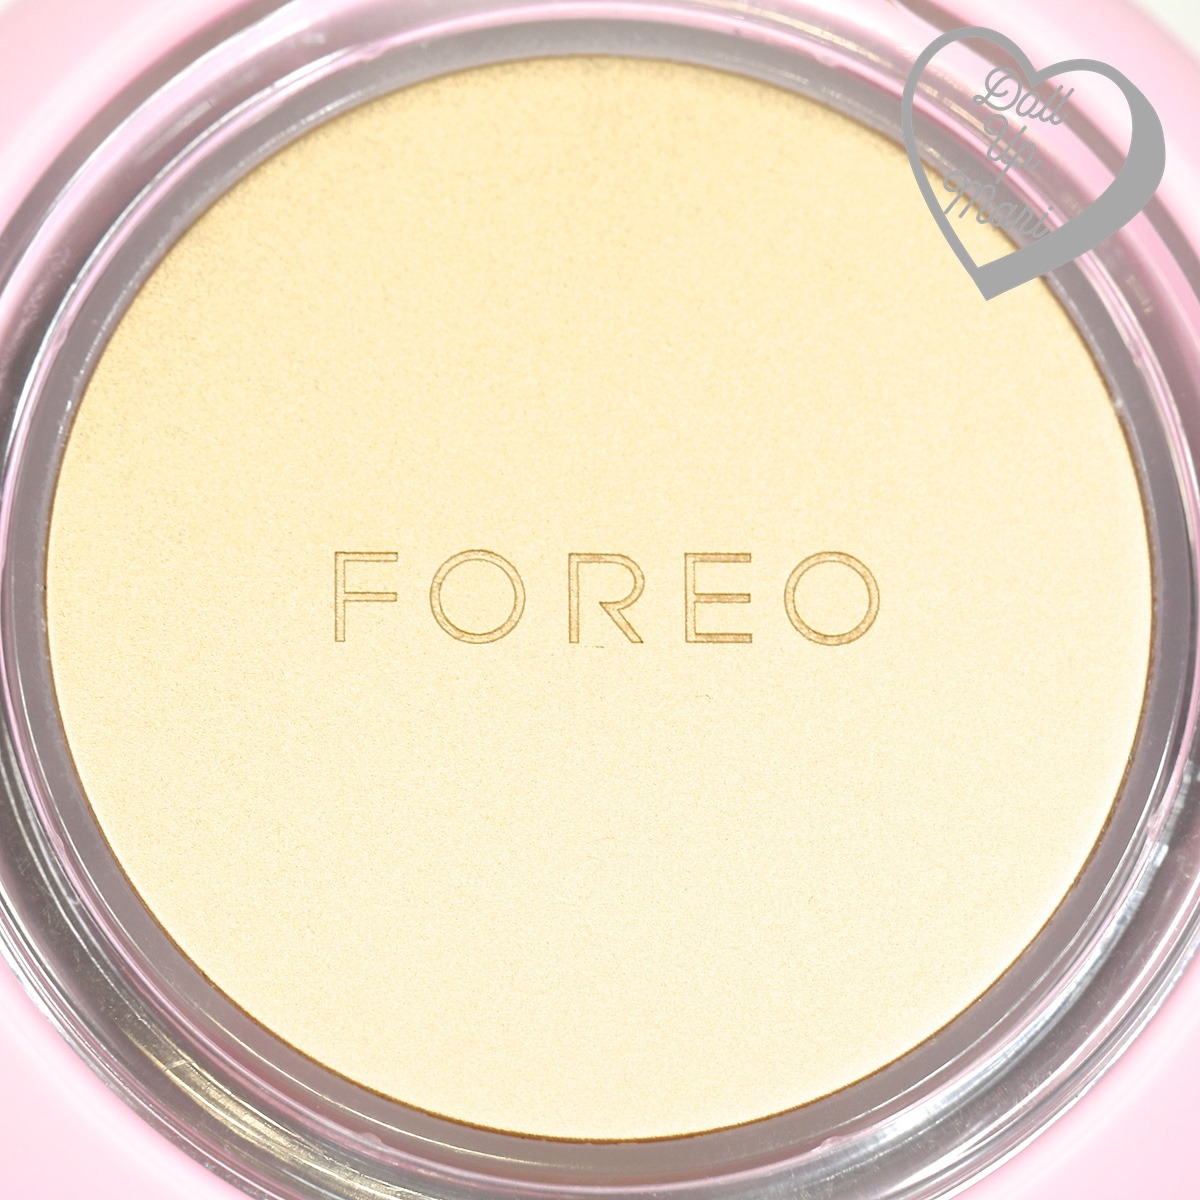 FOREO UFO Smart Mask Device Surface when turned off